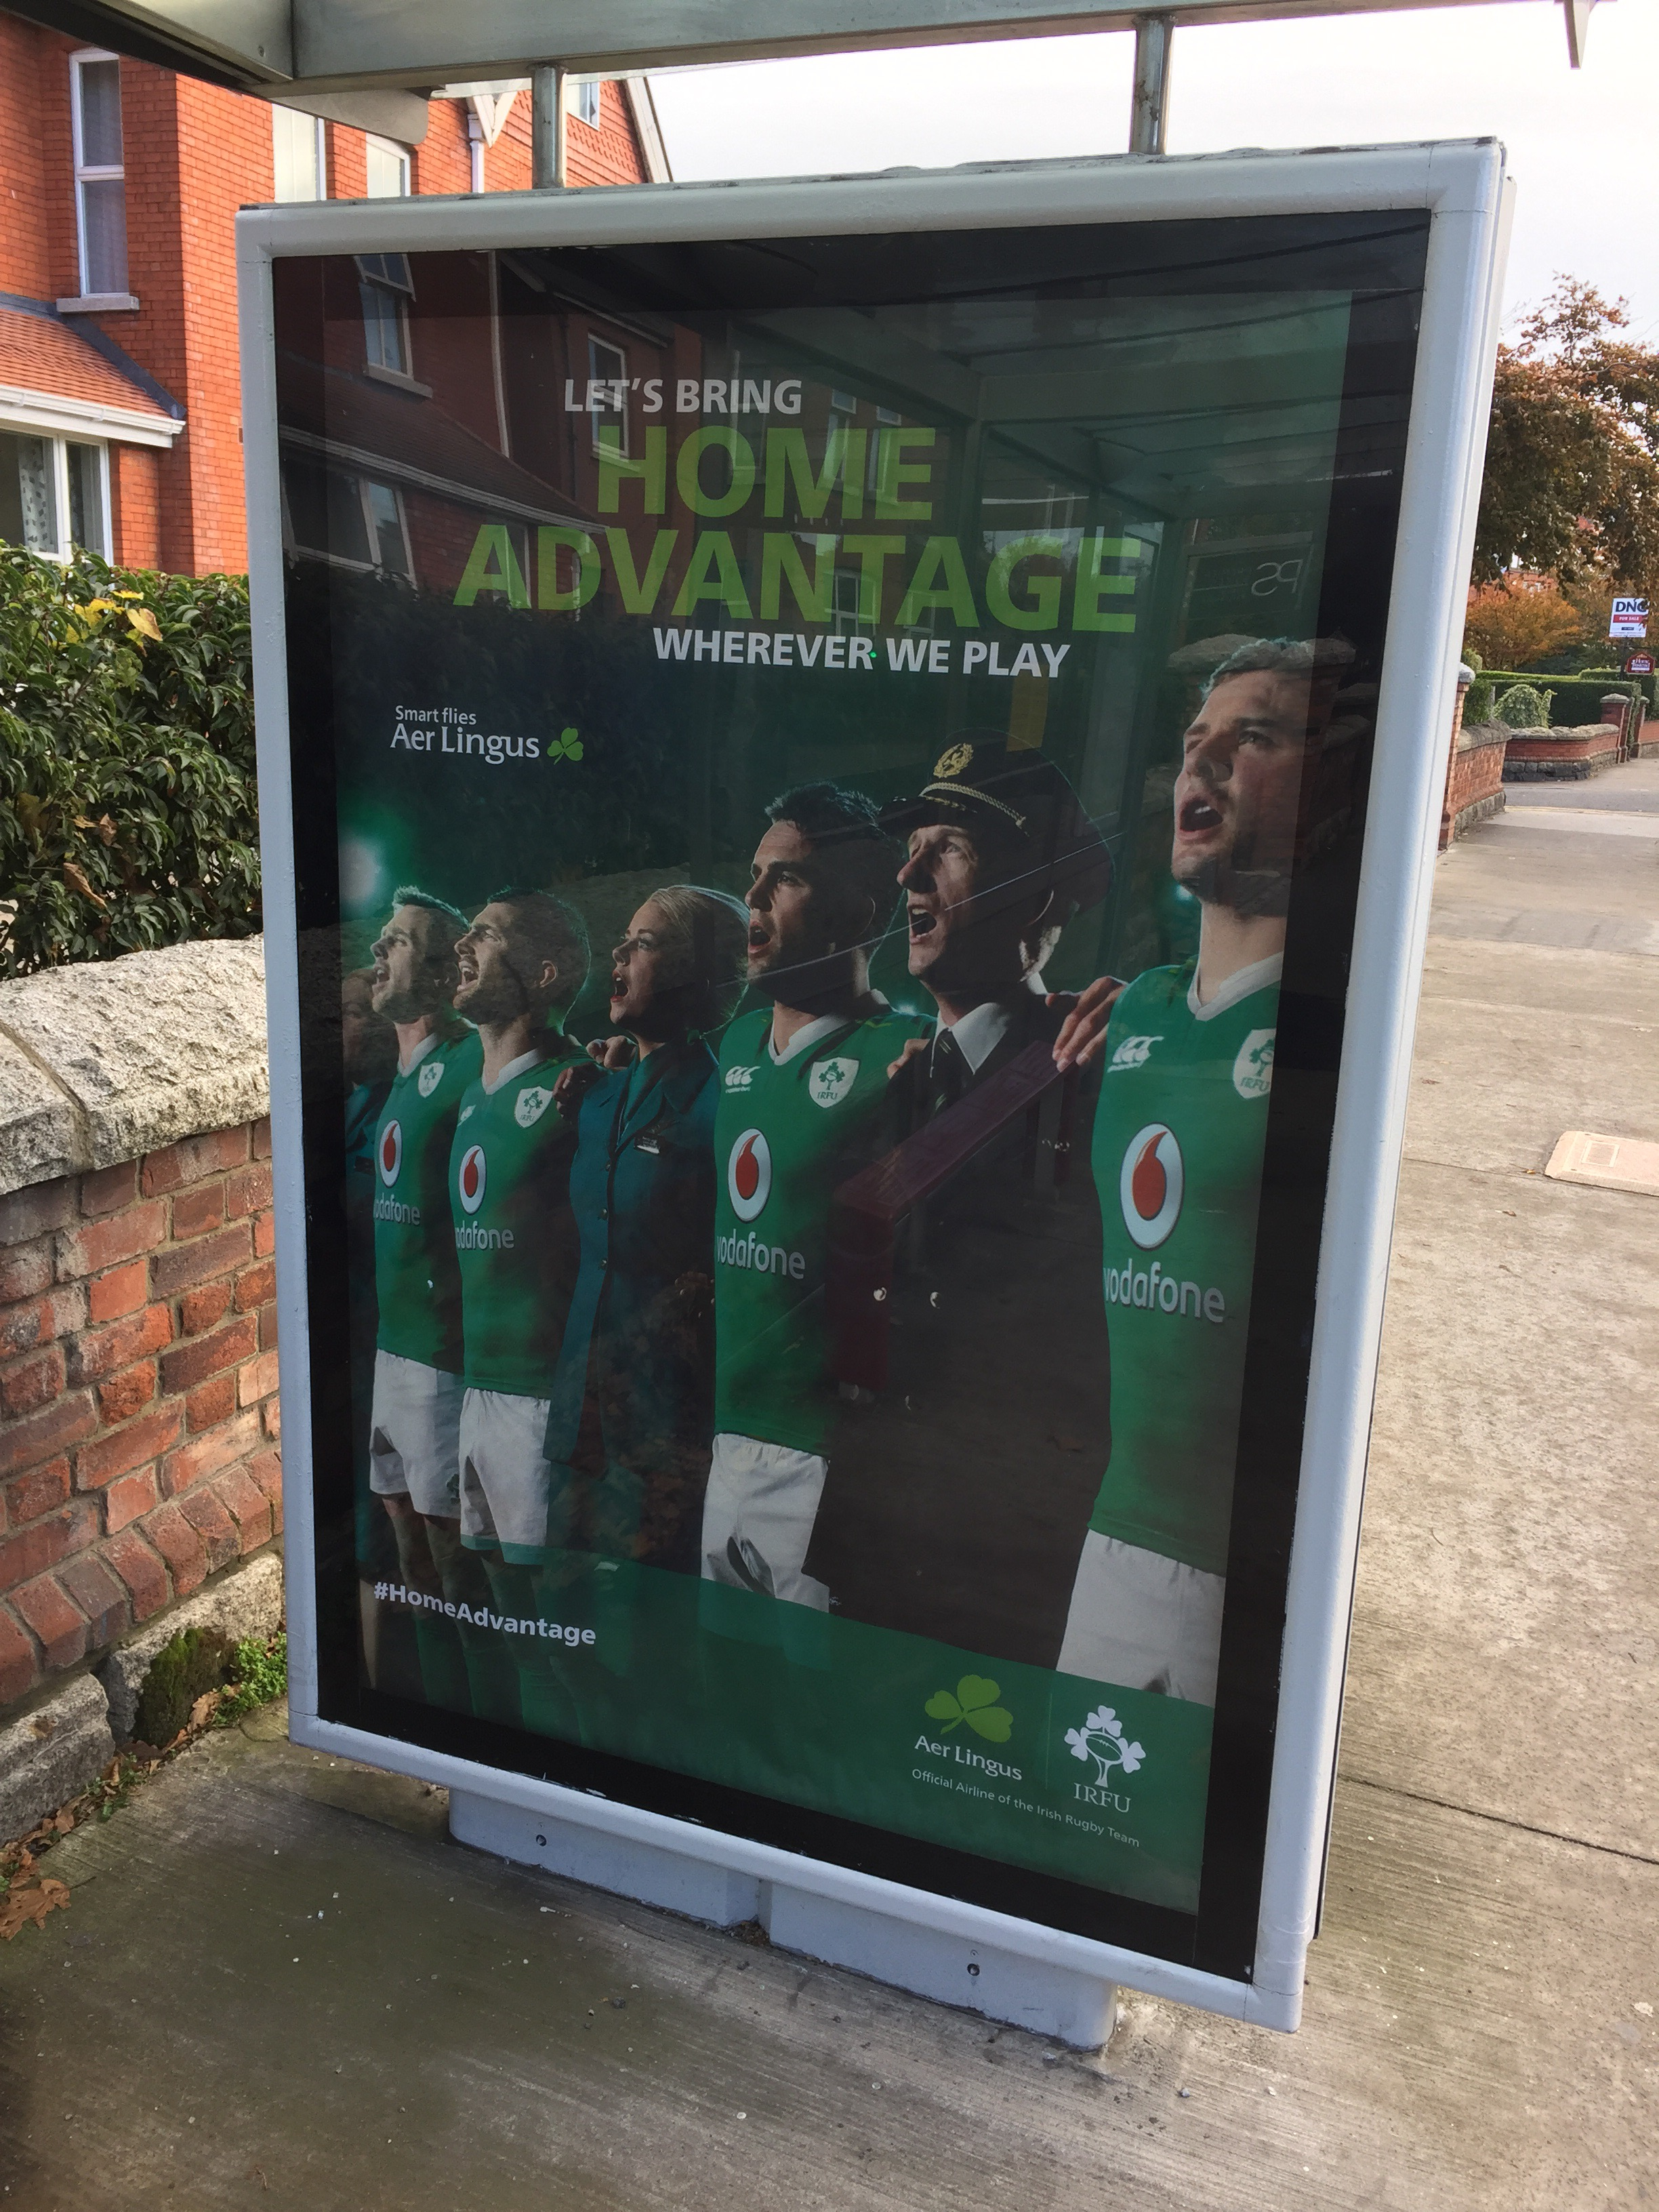 Aer Lingus – Let's bring home advantage wherever we play